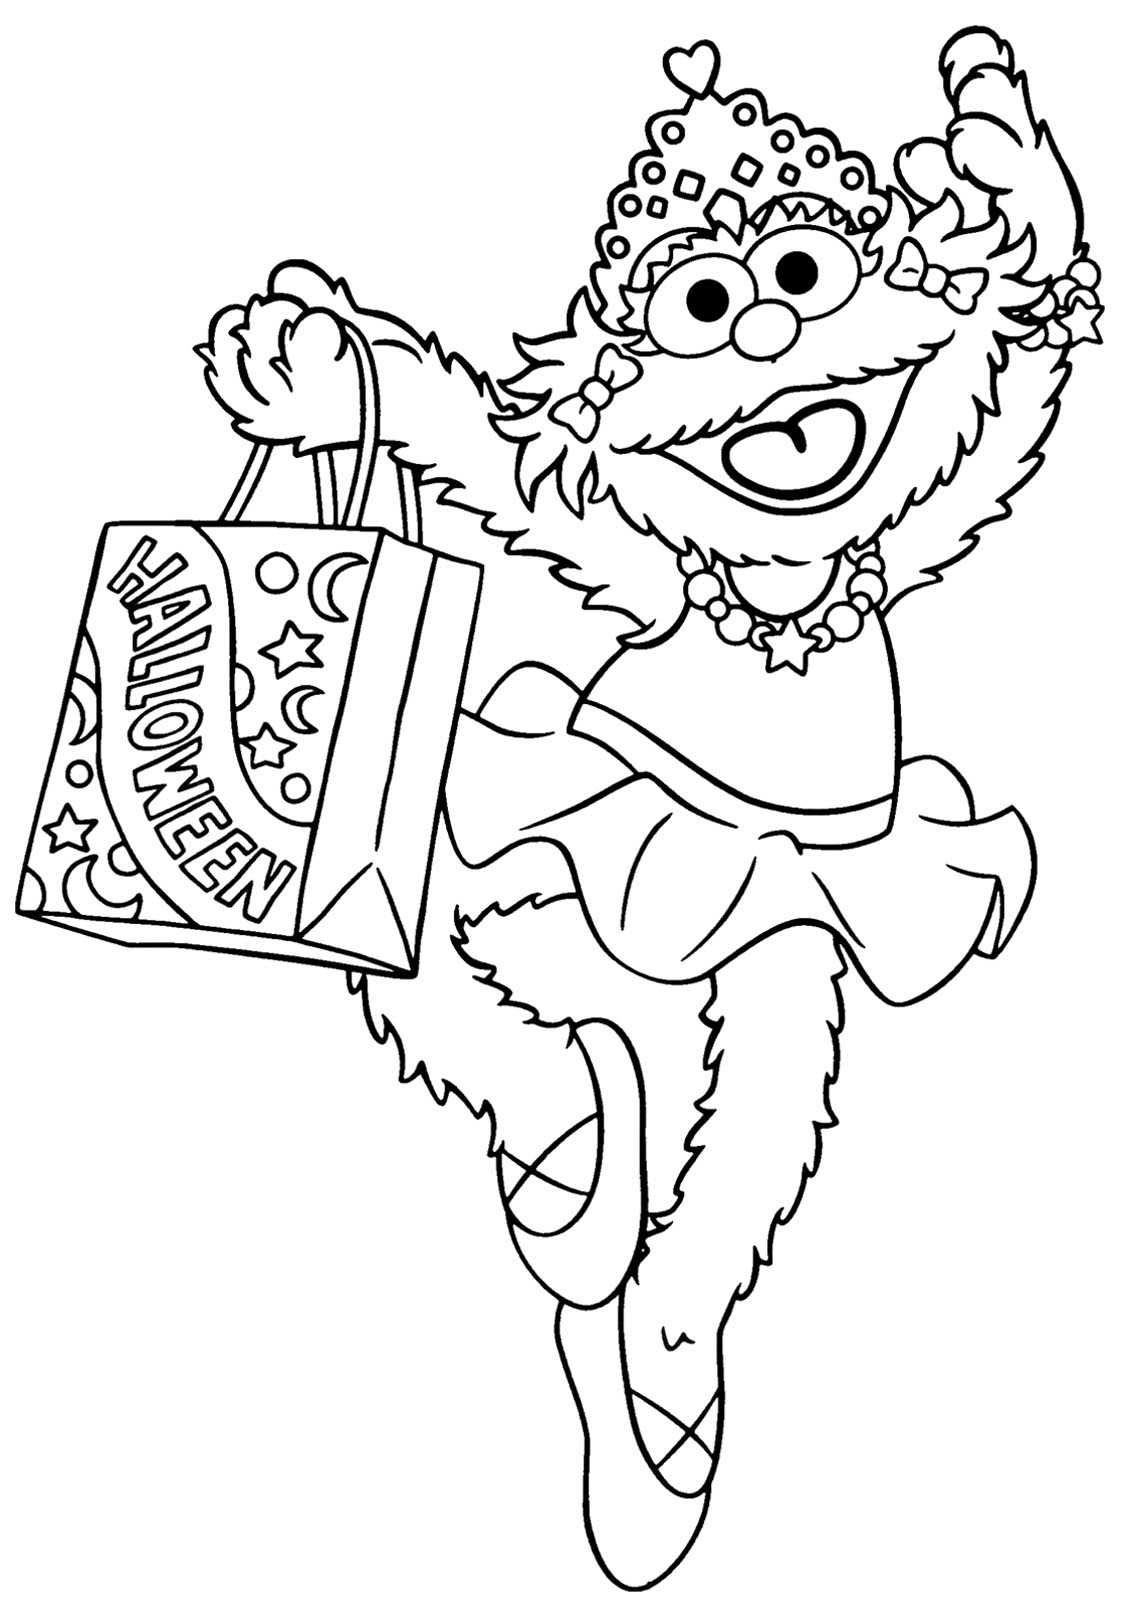 Sesame Street To Print For Free - Sesame Street Kids Coloring Pages - Free Printable Sesame Street Coloring Pages